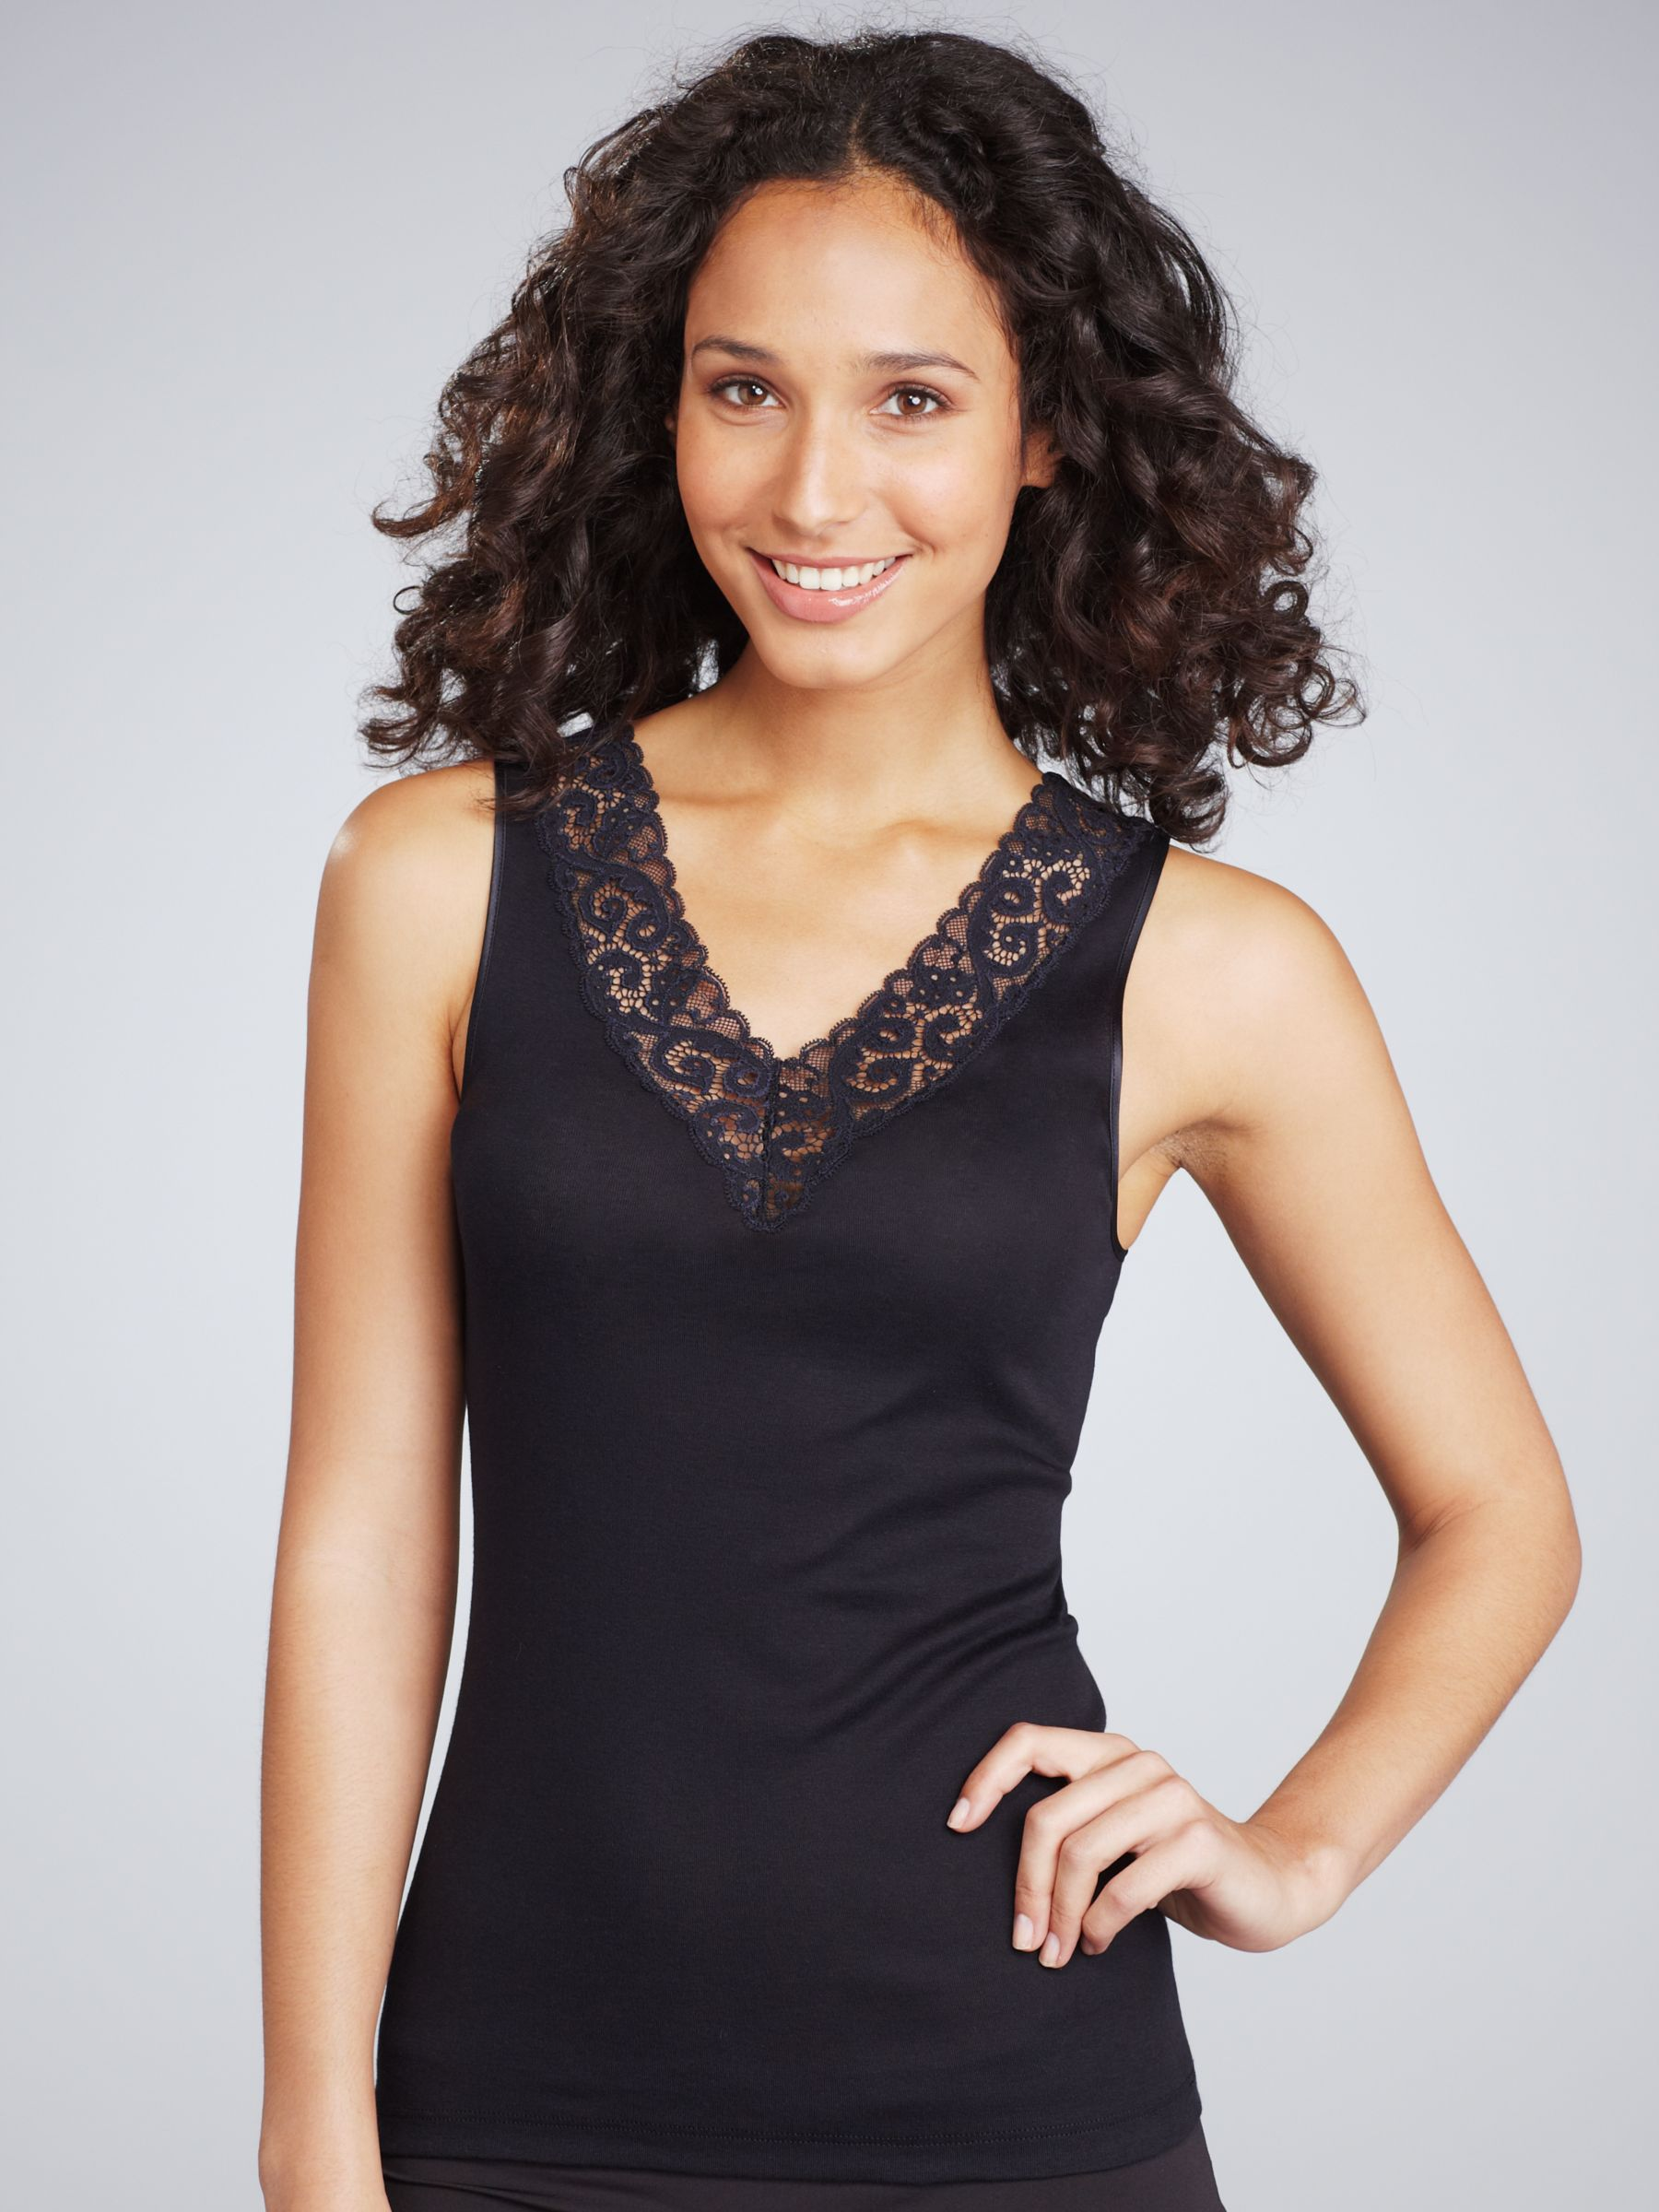 Hanro Everyday Cotton Lace Camisole Black open in new window